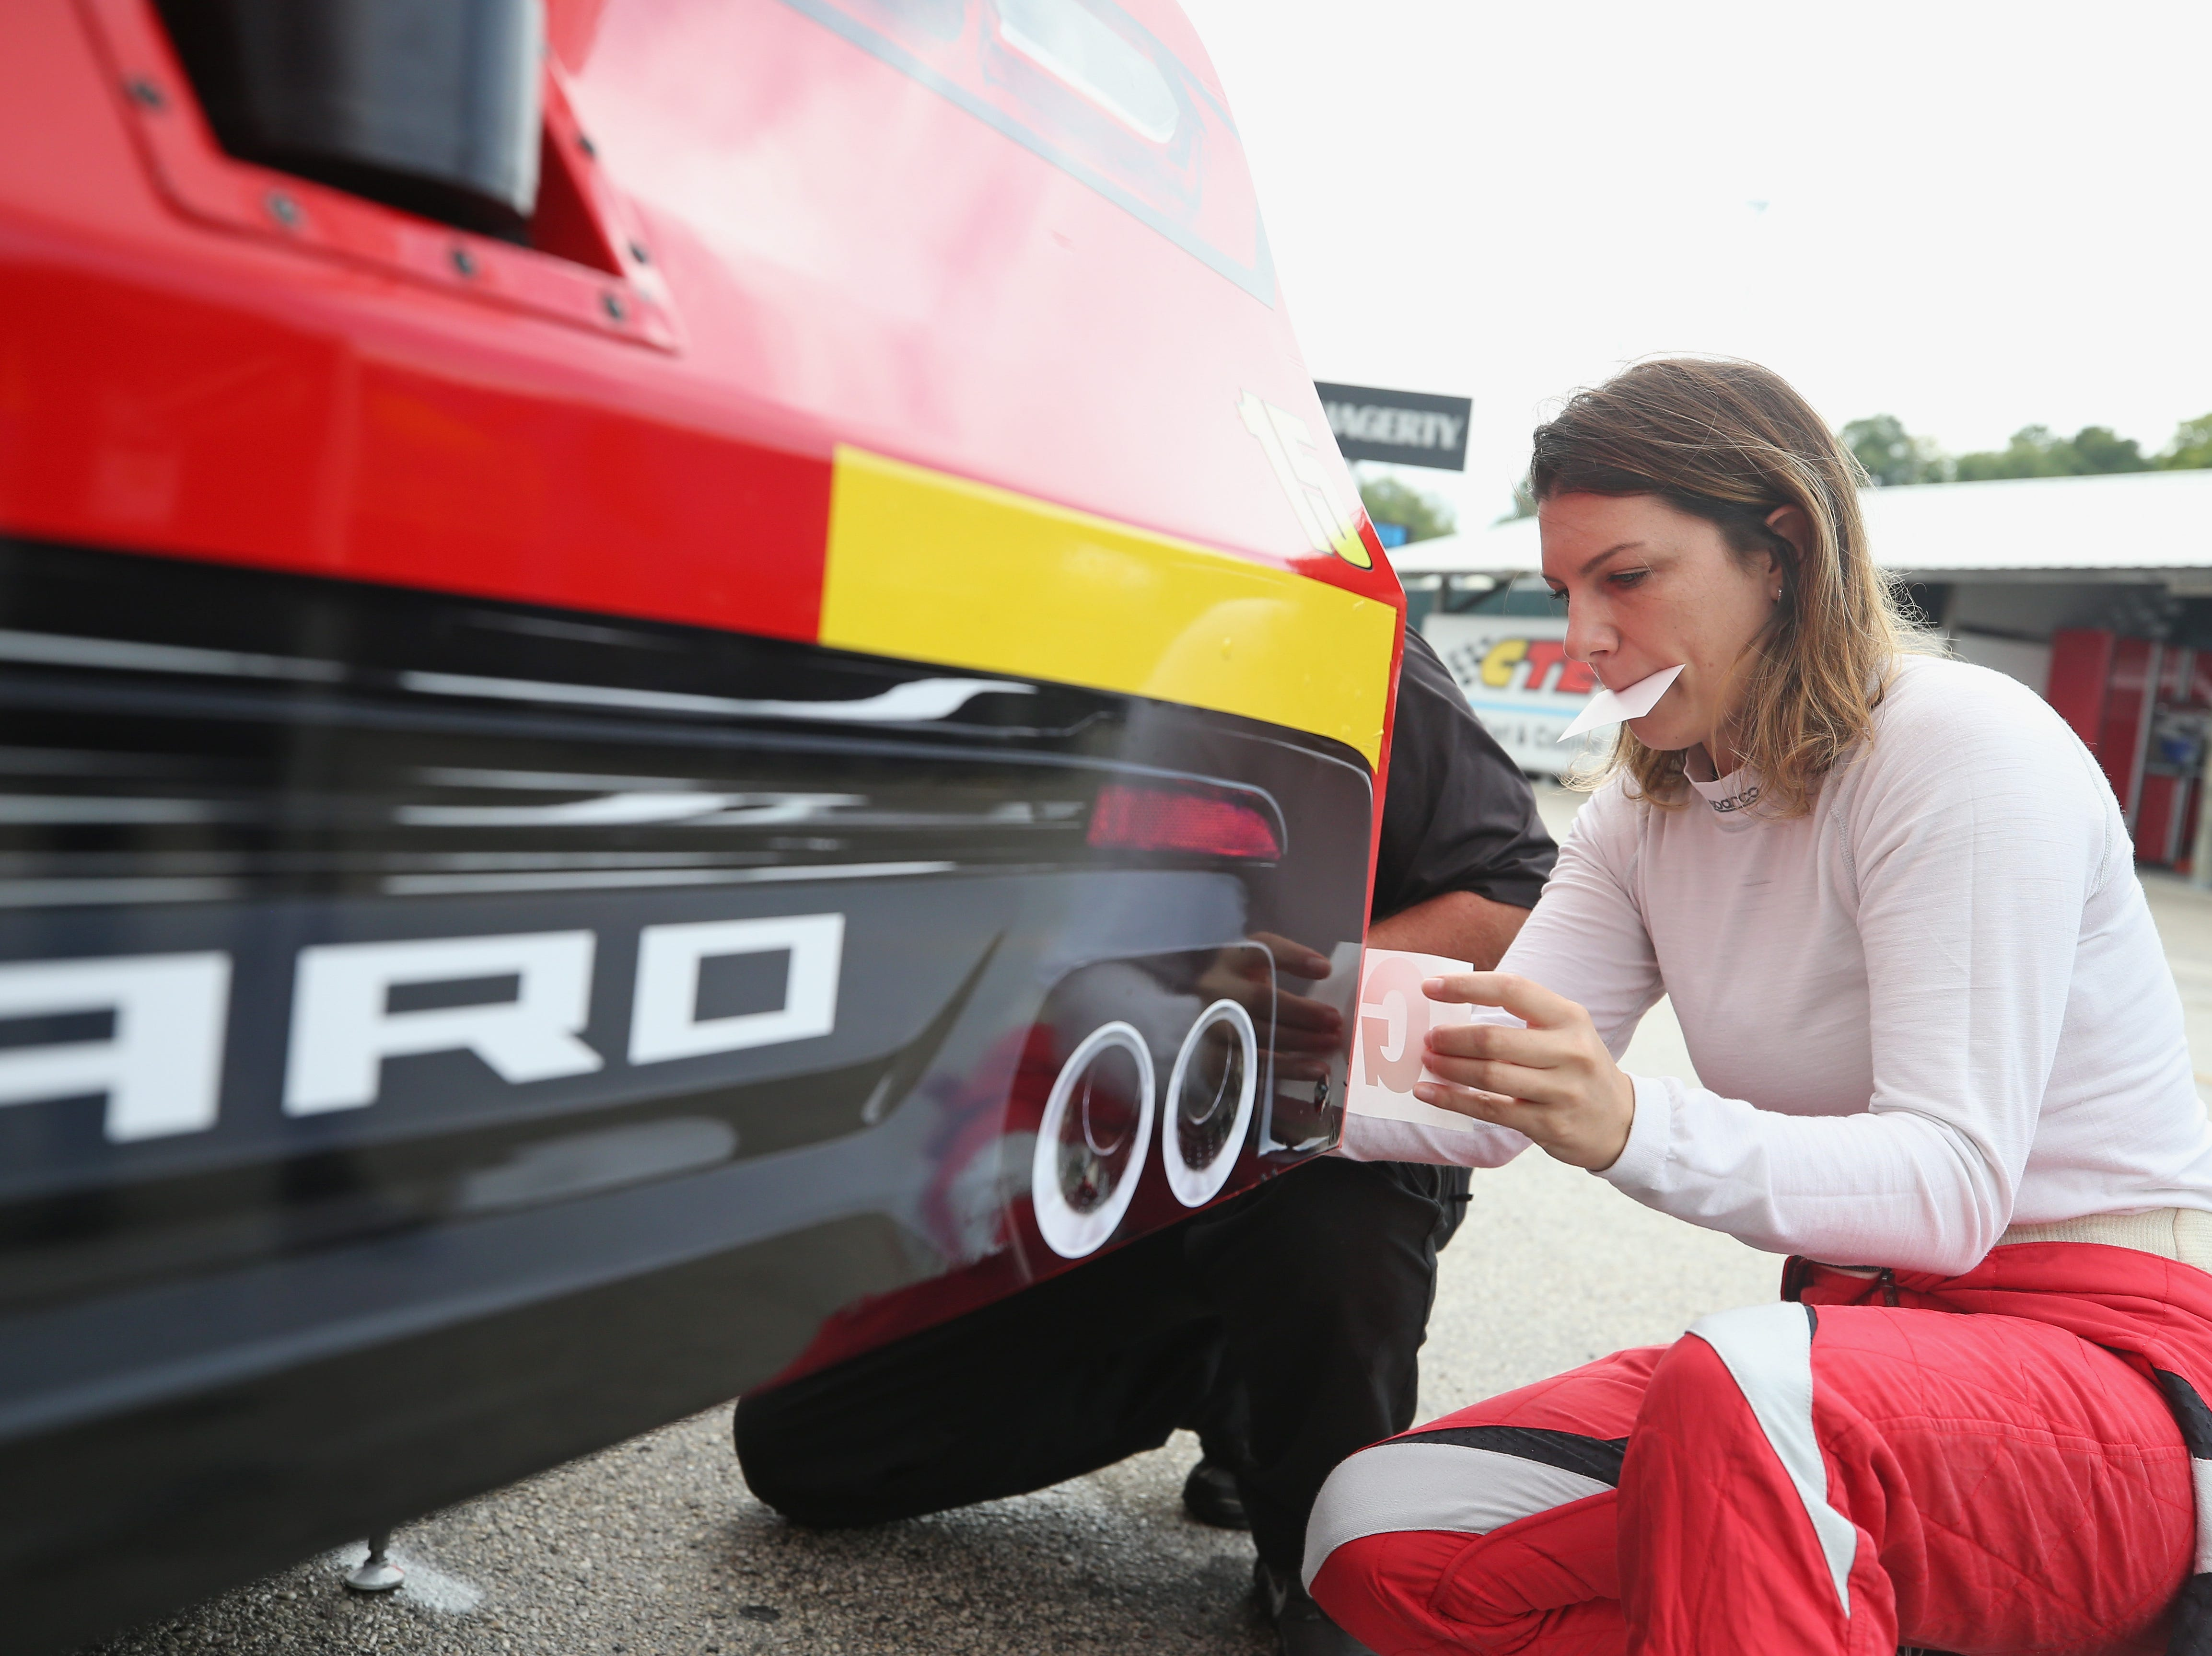 ELKHART LAKE, WI - AUGUST 24:  Katherine Legge, driver of the #15 Airtec Chevrolet, applies decals to her car during practice for the NASCAR Xfinity Series Johnsonville 180 at Road America on August 24, 2018 in Elkhart Lake, Wisconsin.  (Photo by Matt Sullivan/Getty Images)